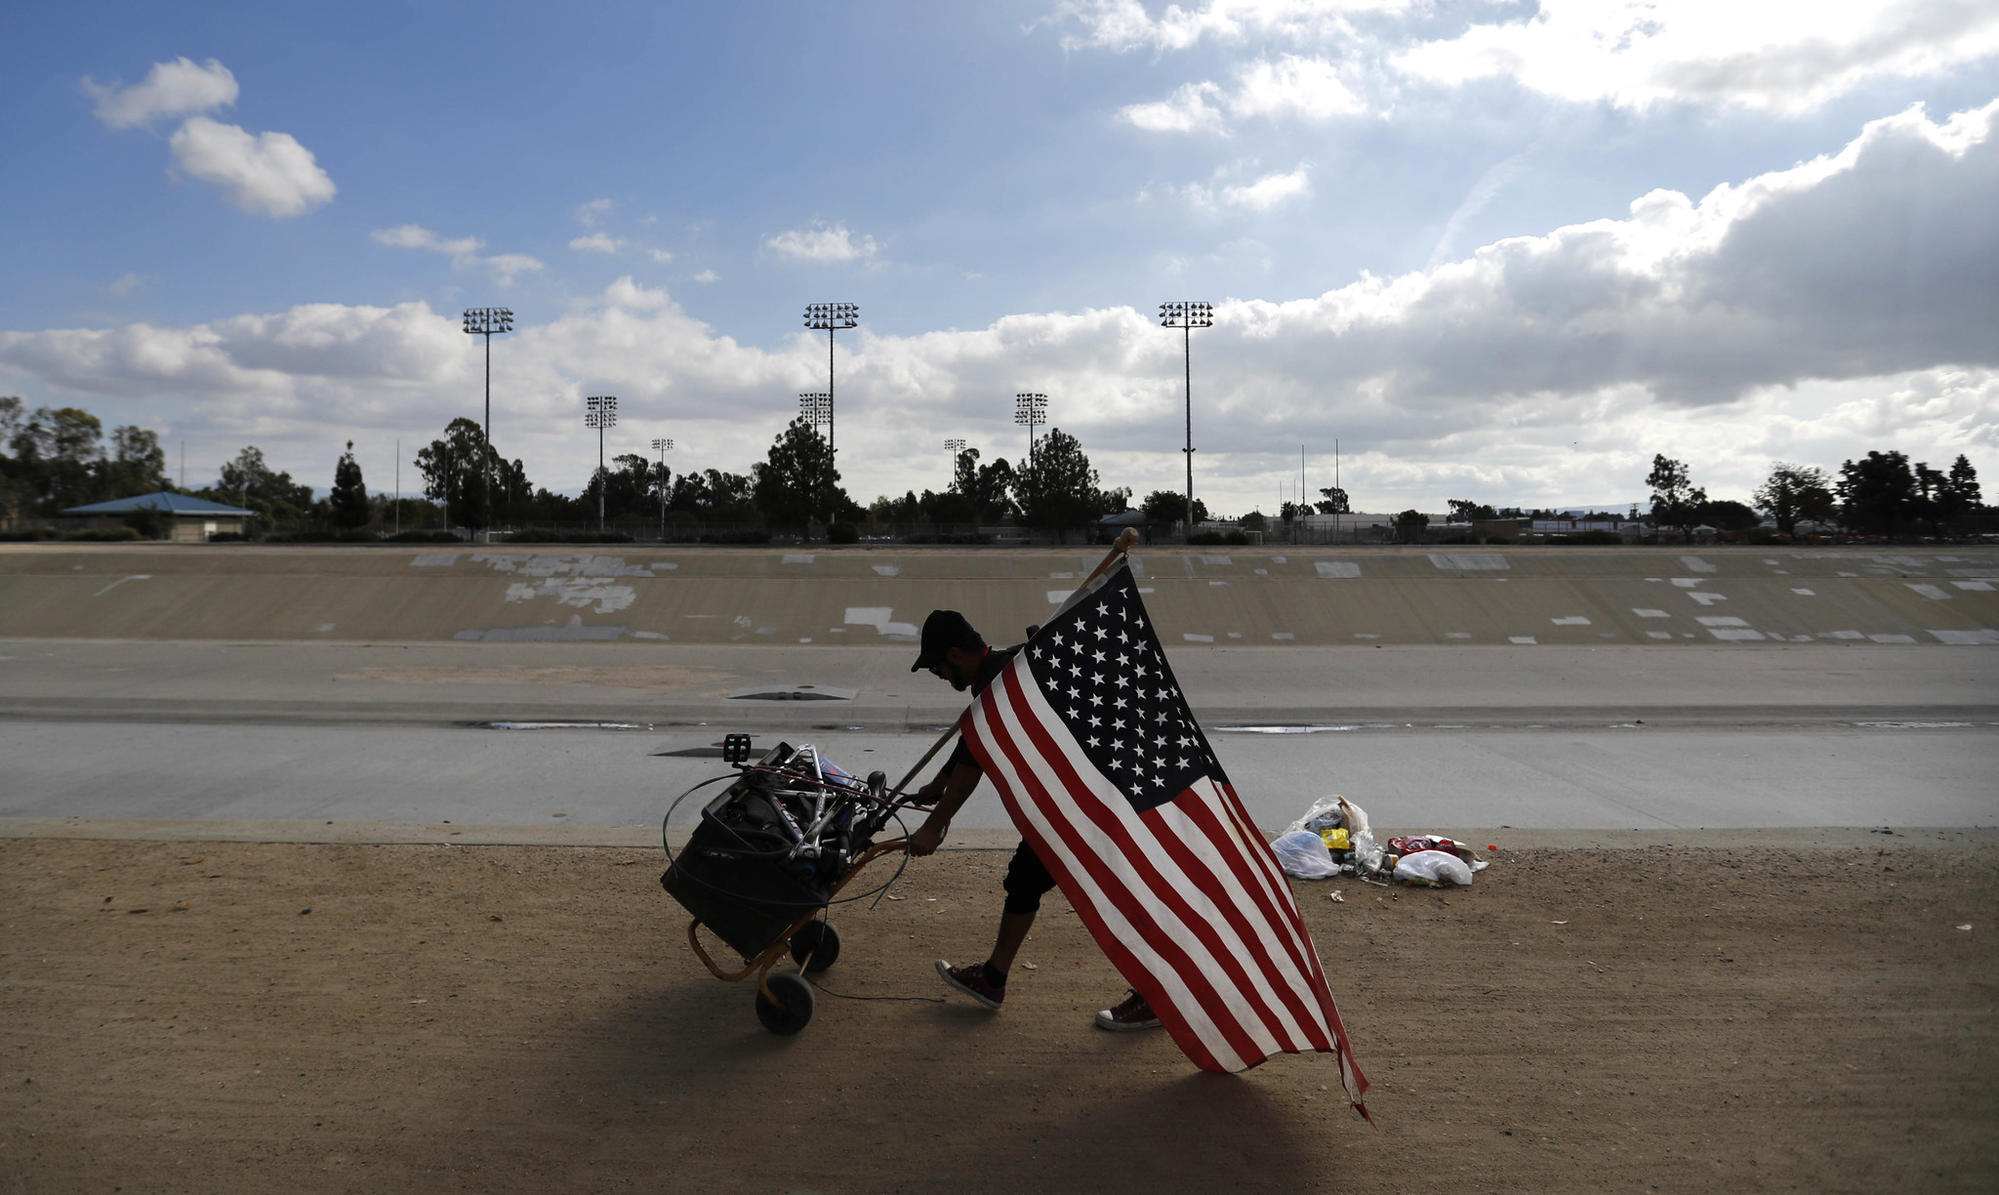 Ivan Reyes, who has been living in the Santa Ana River trail homeless encampment for the past two months, carries an American flag along with his belongings.